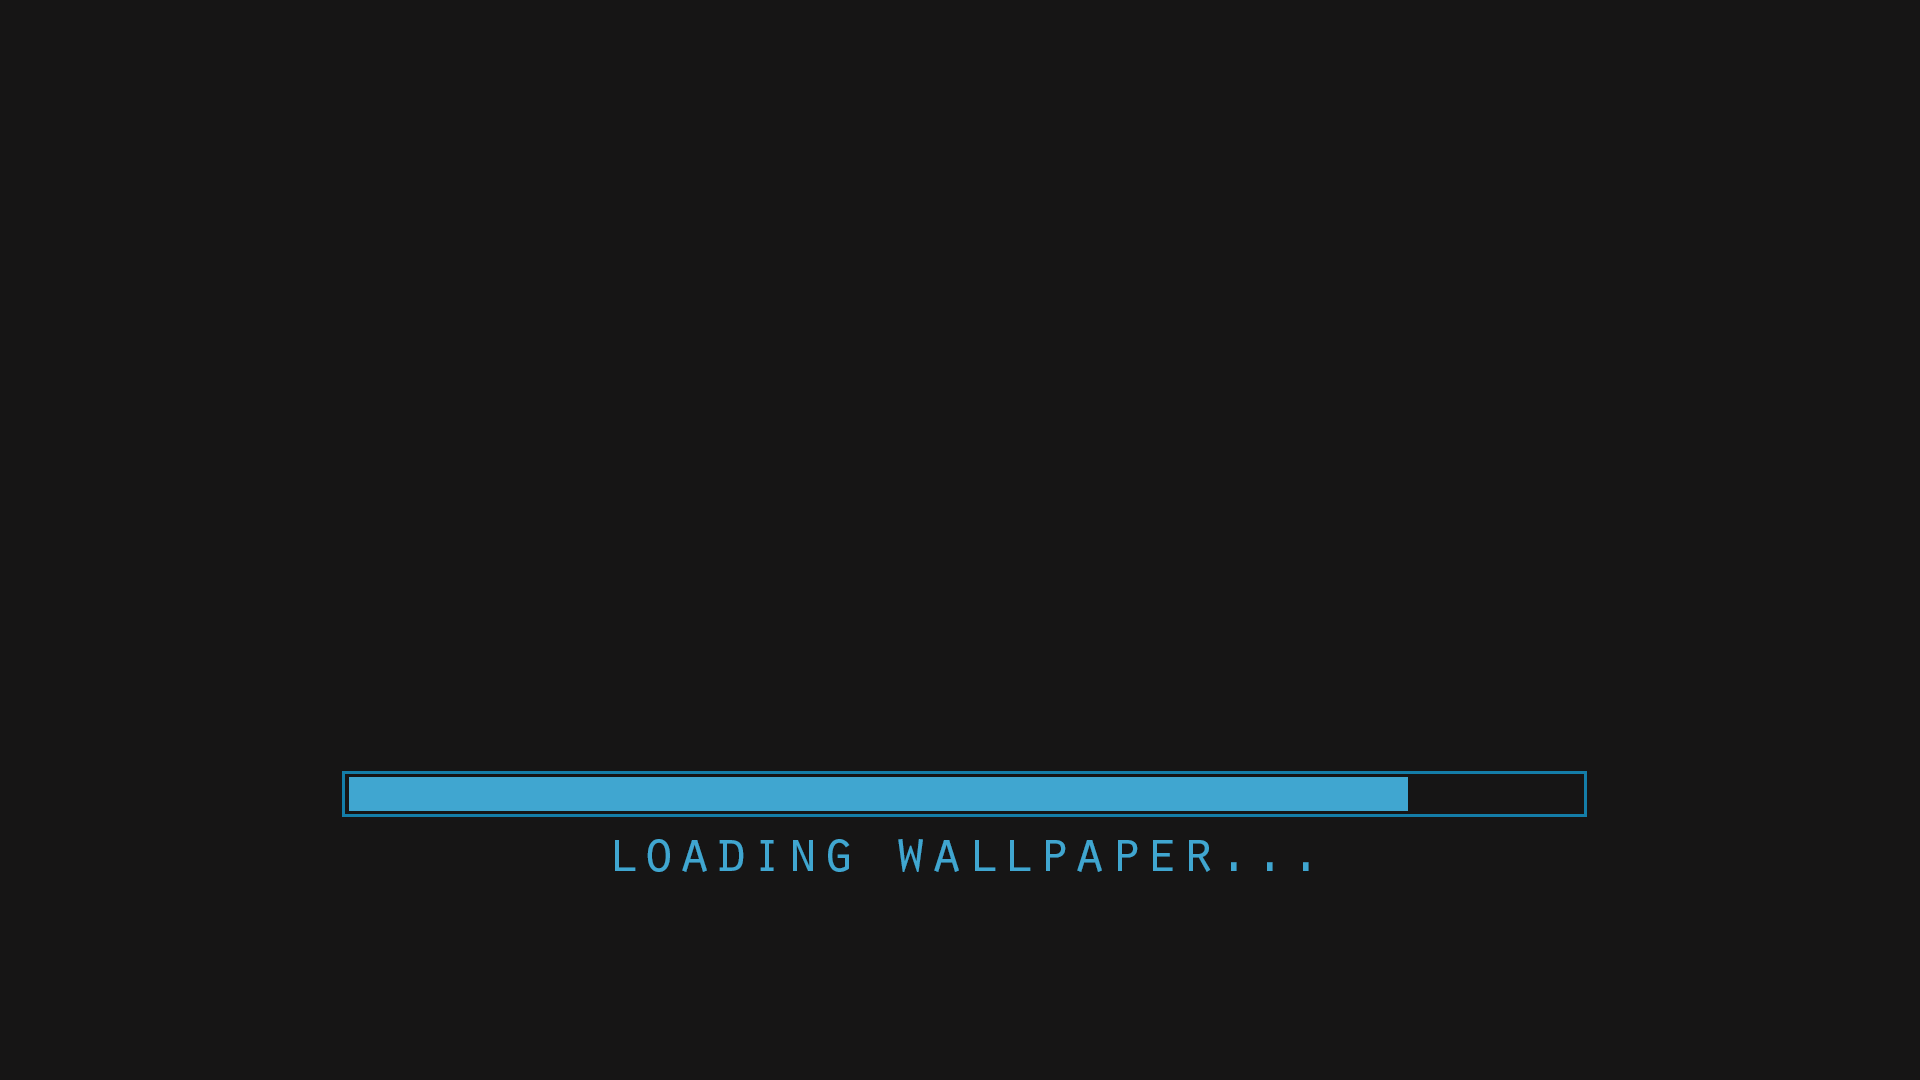 5 Days Of Awesome Wallpapers Minimalist Wallpapers TechSpot